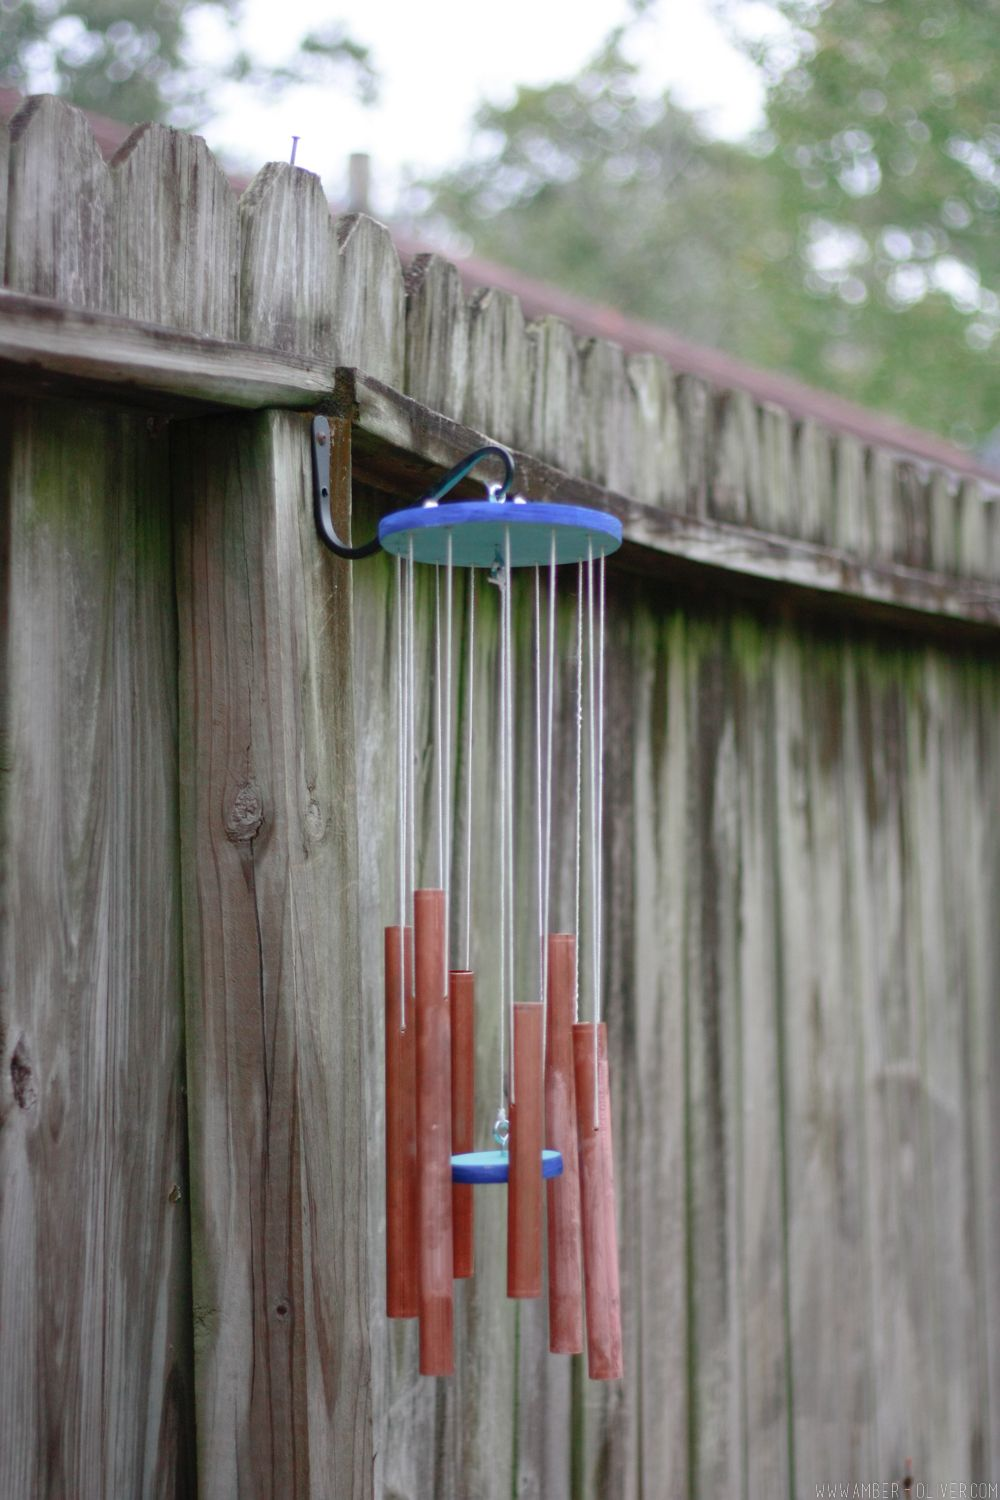 Diy Wind Chime How To Make Your Own Wind Chime Diy Wind Chimes